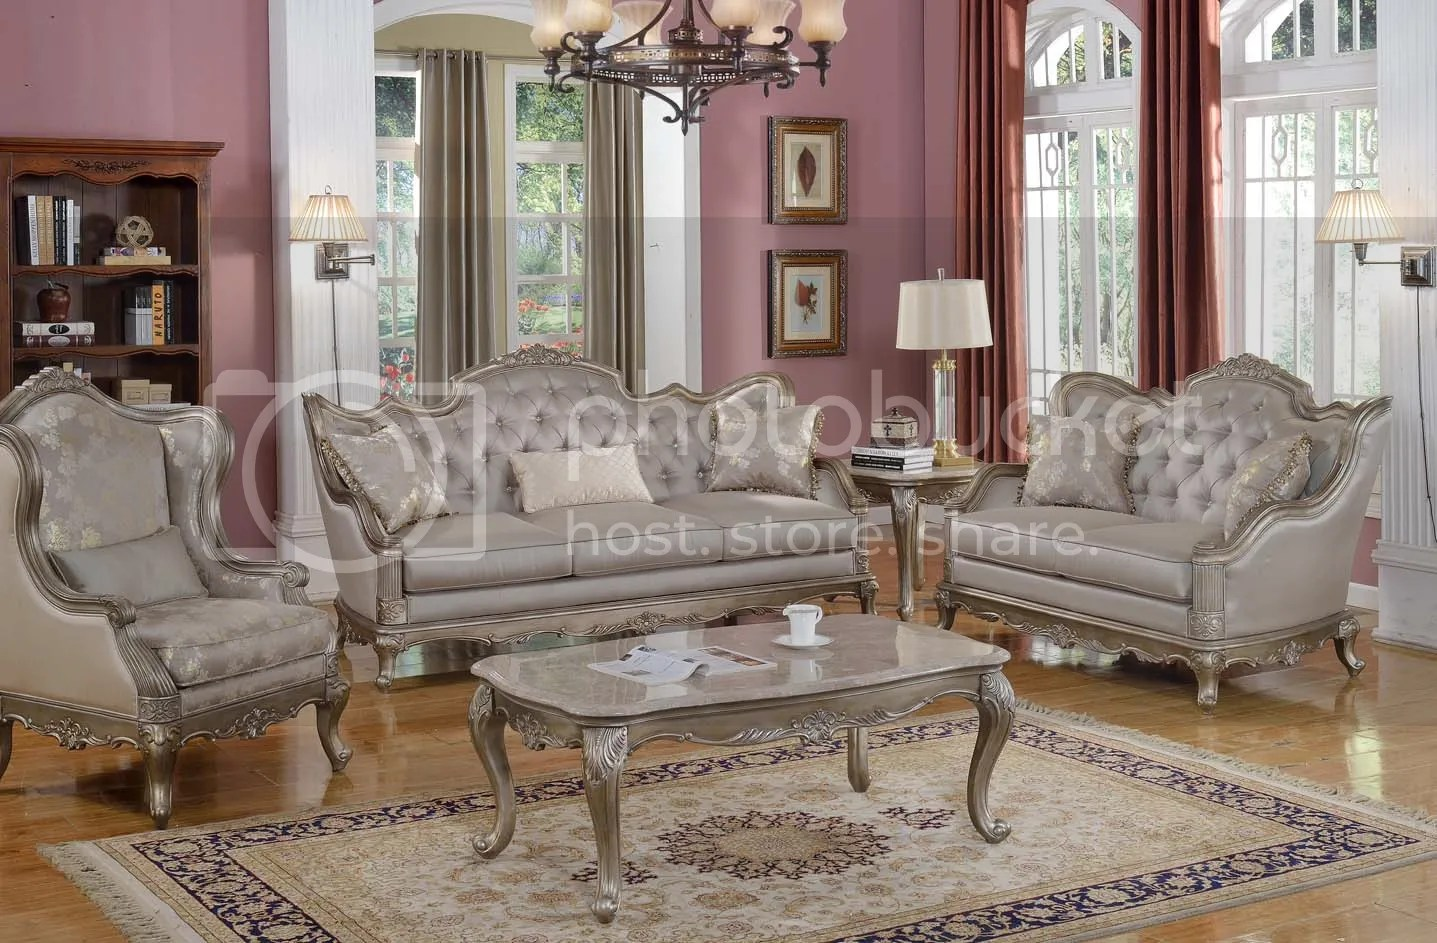 Elegant Traditional Antique Style Sofa \ LoveSeat Formal Living - formal living room chairs